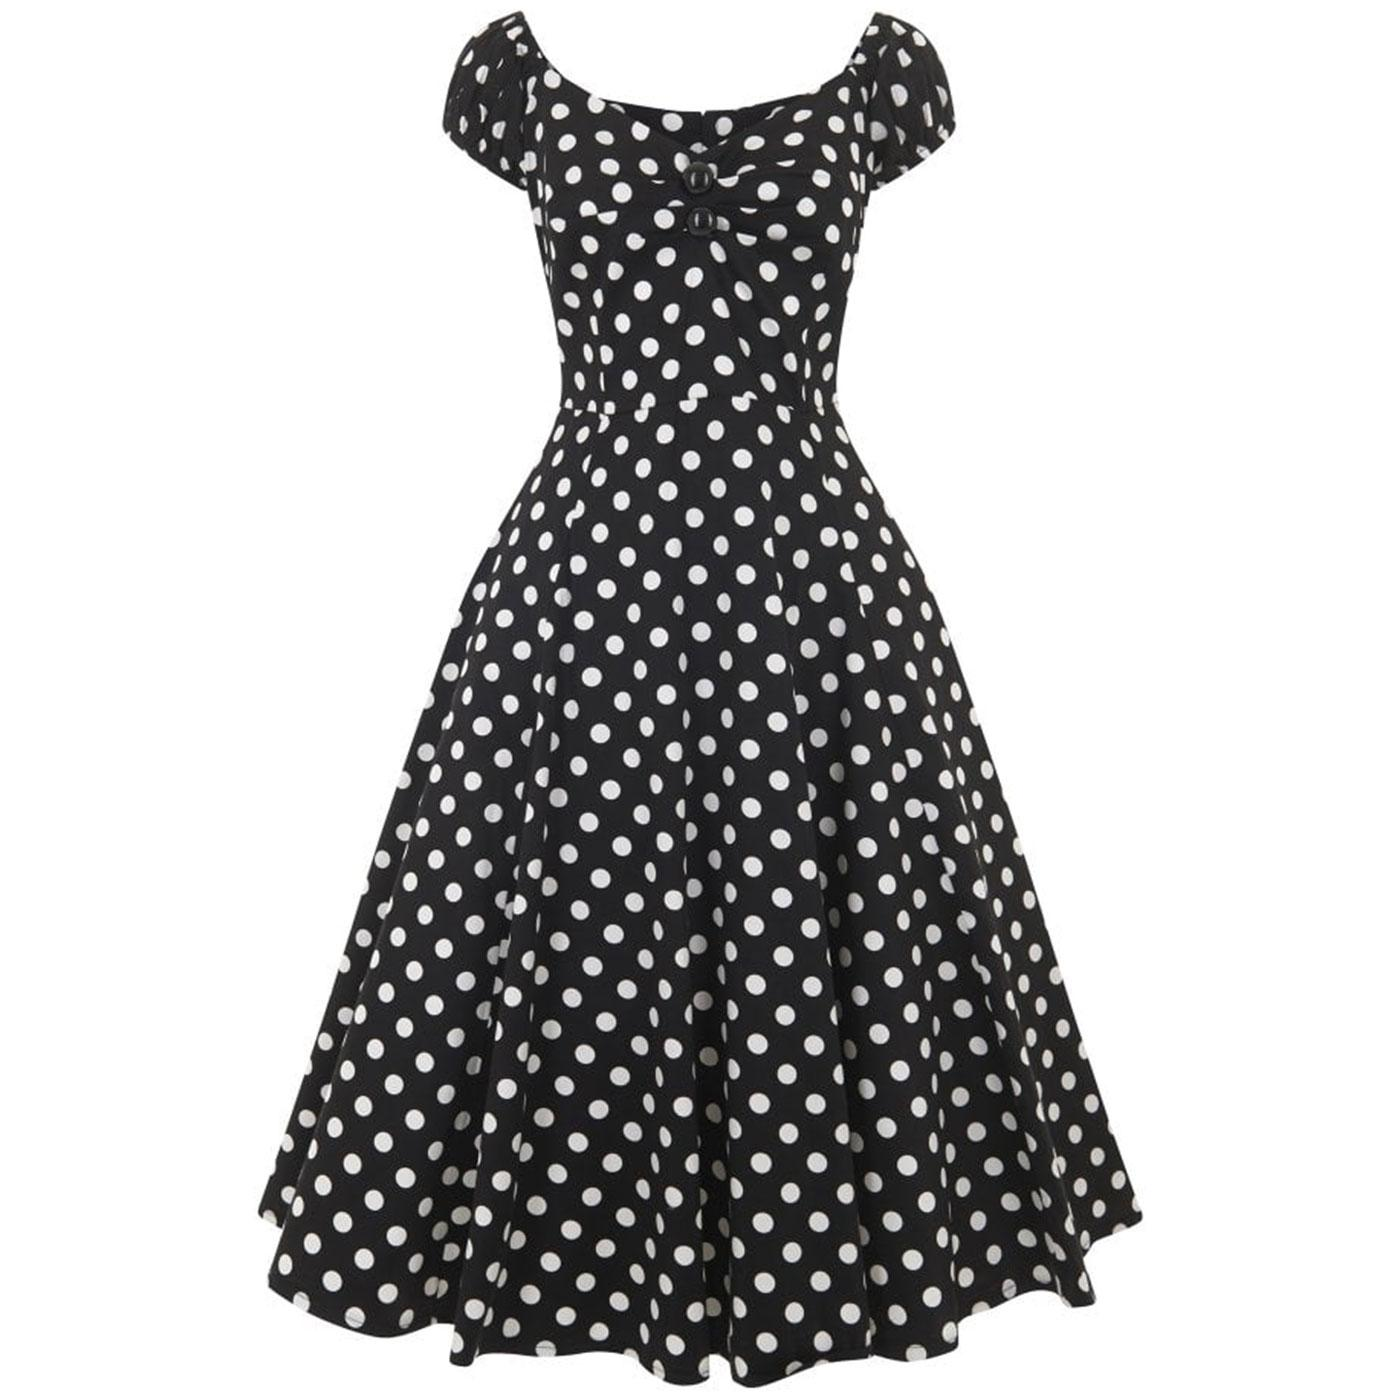 Dolores COLLECTIF 1950s Black Polka Dot Doll Dress